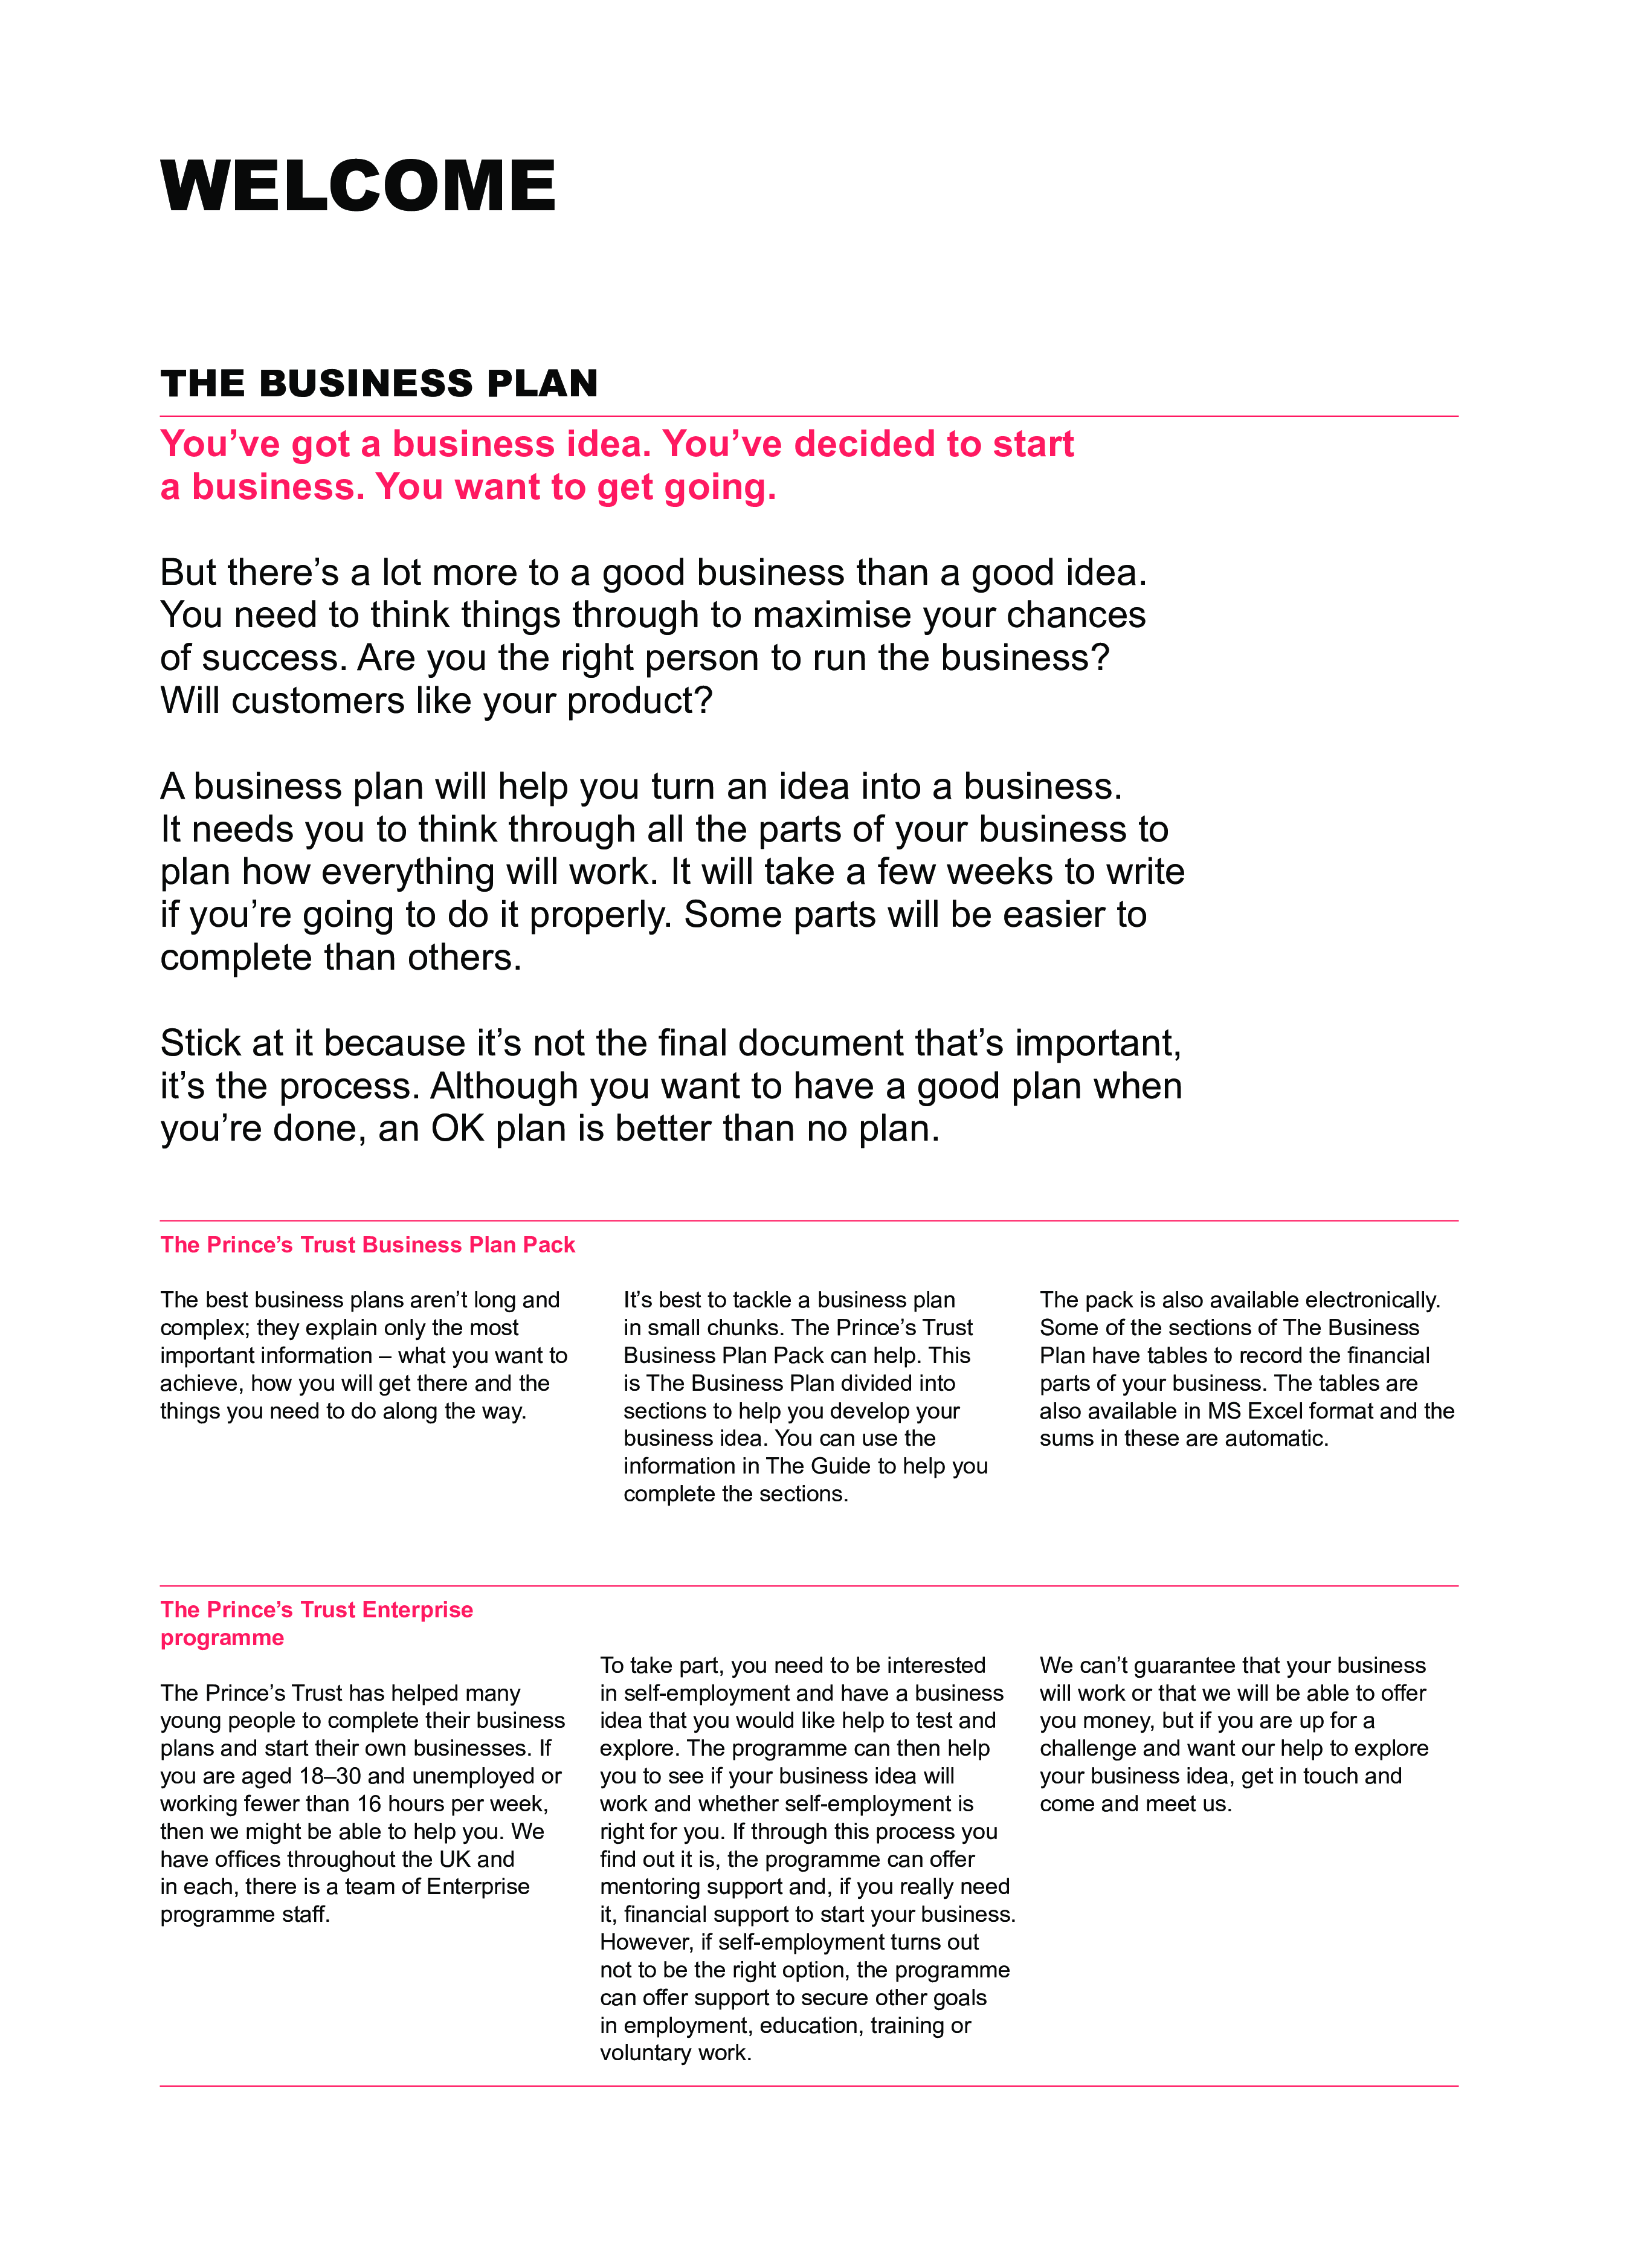 Free simple business plan template templates at simple business plan template cheaphphosting